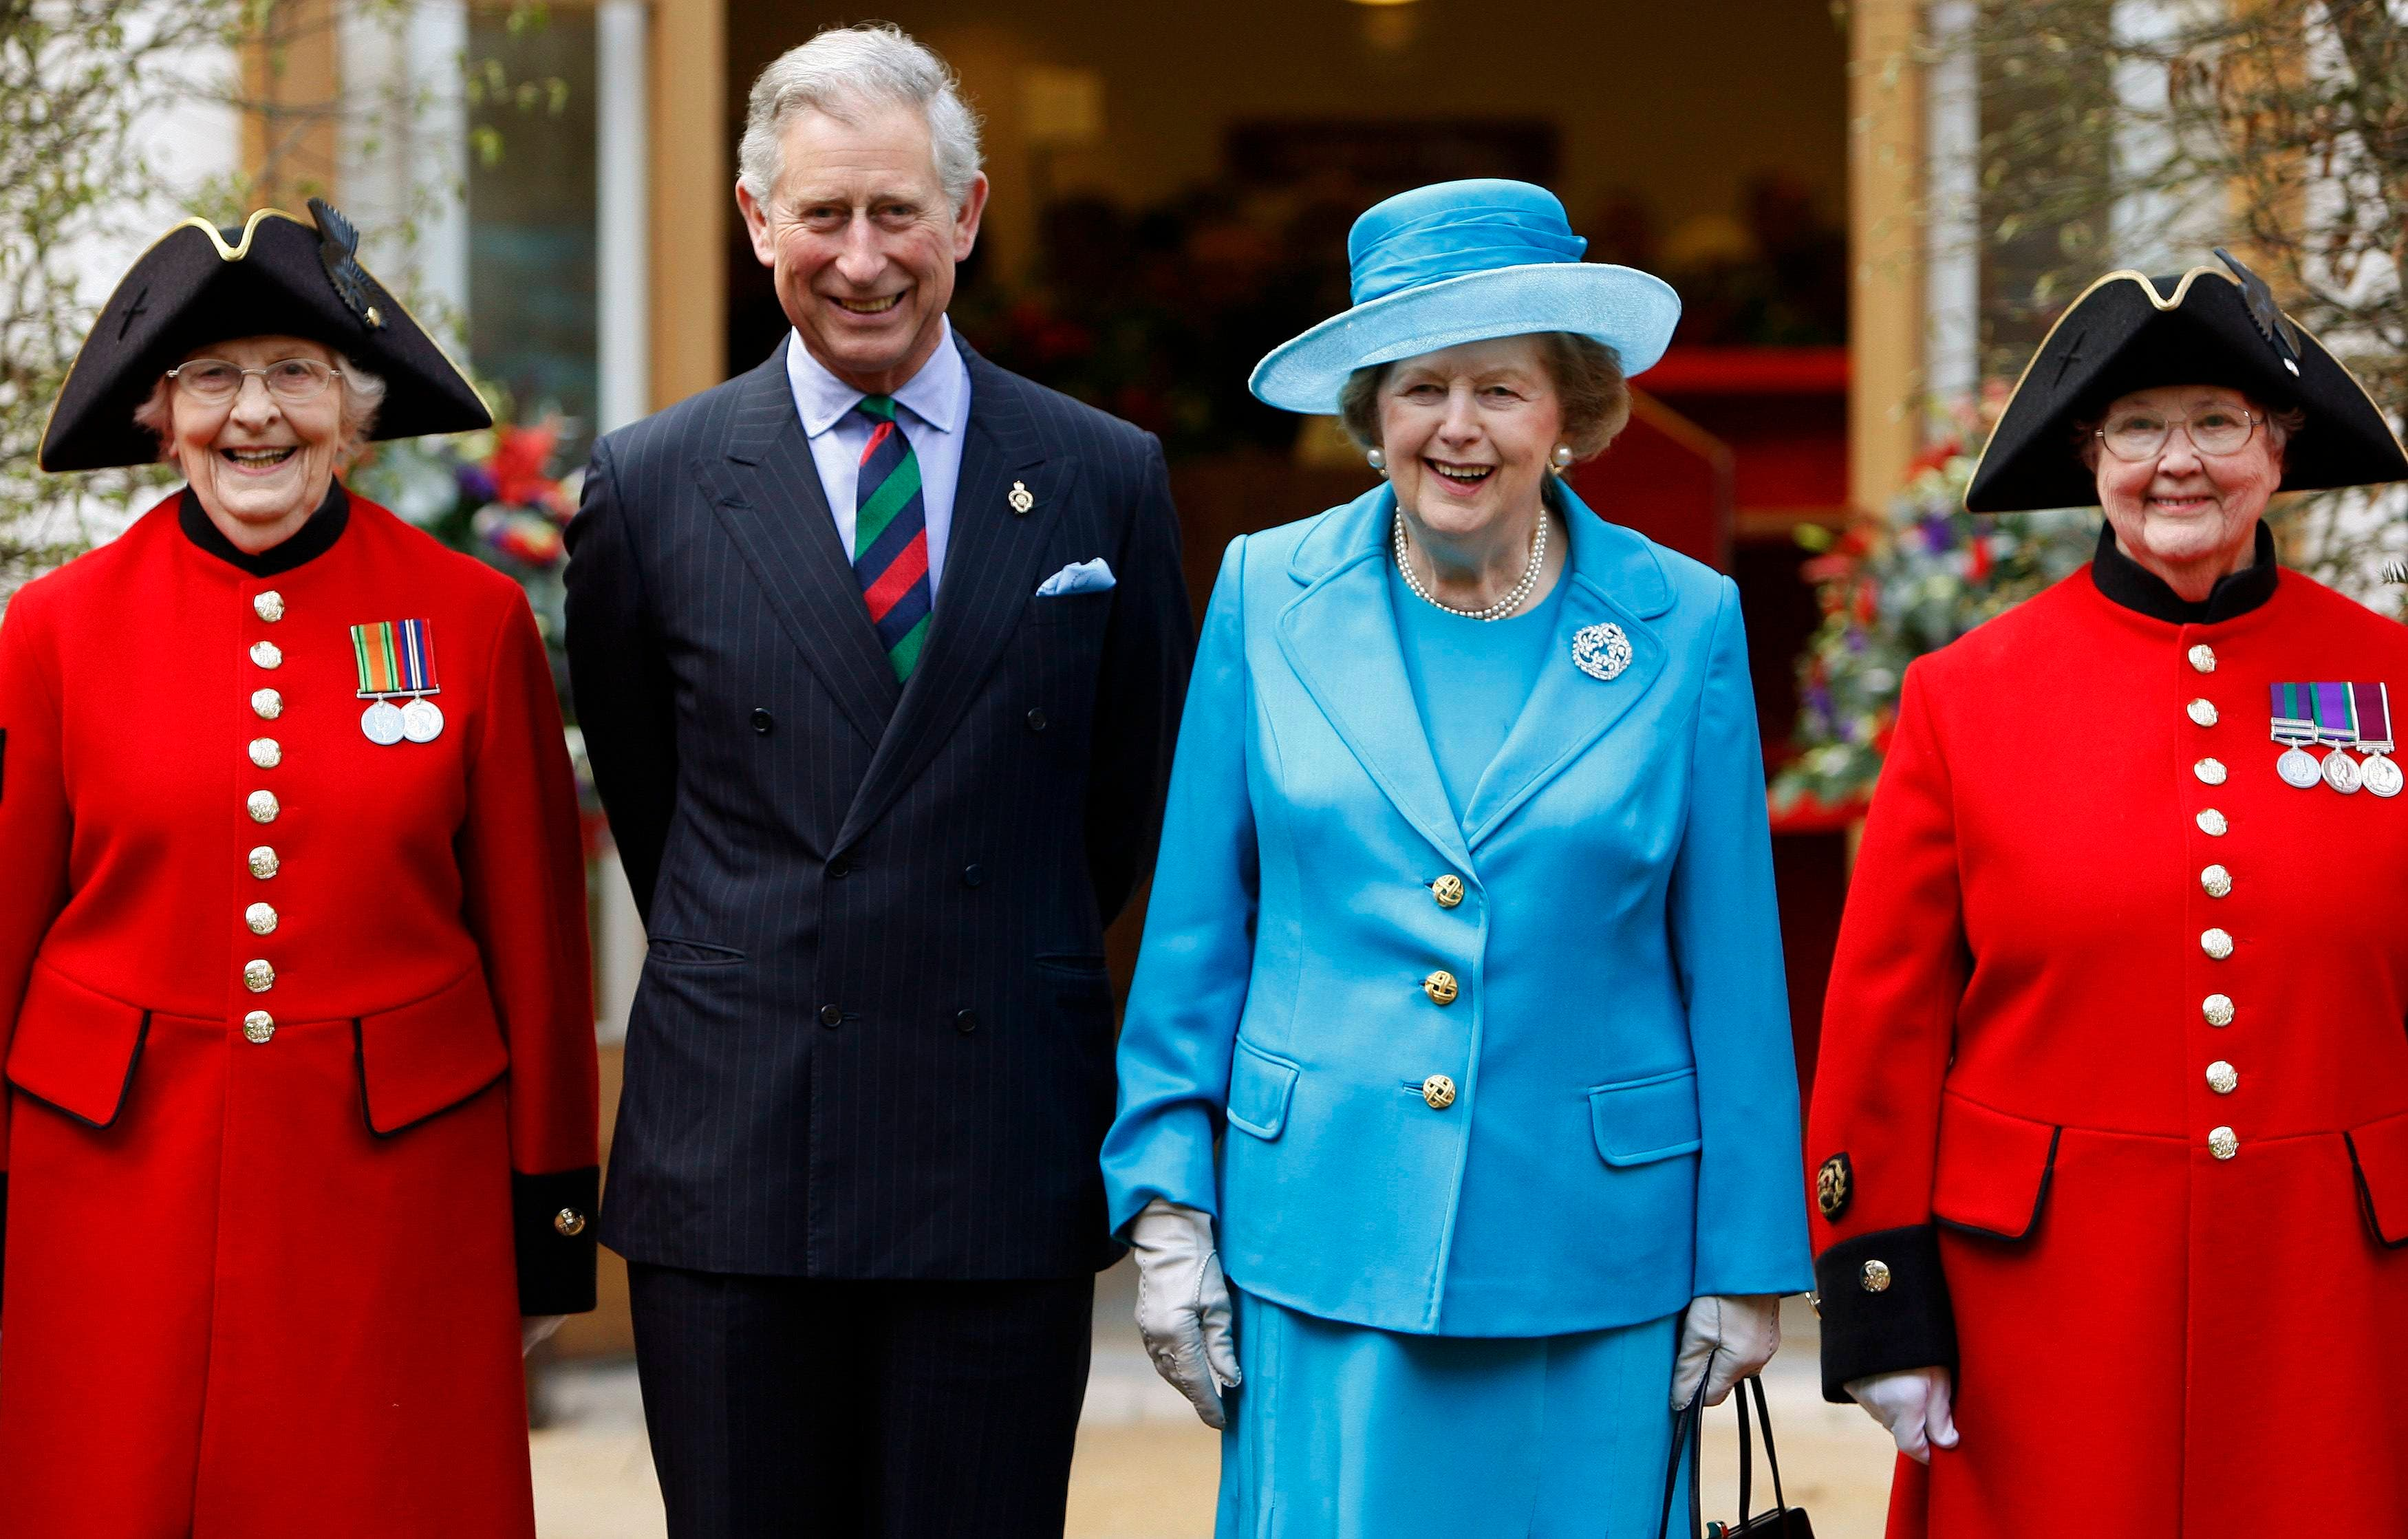 Britain's Prince Charles (2nd L) and former Prime Minister Margaret Thatcher (2nd R) pose with Chelsea pensioners Dorothy Hughes (L) and Winifred Phillips as they attend the opening of a new infirmary at the Royal Hospital Chelsea in London in this March 25, 2009 file photo. (Reuters)